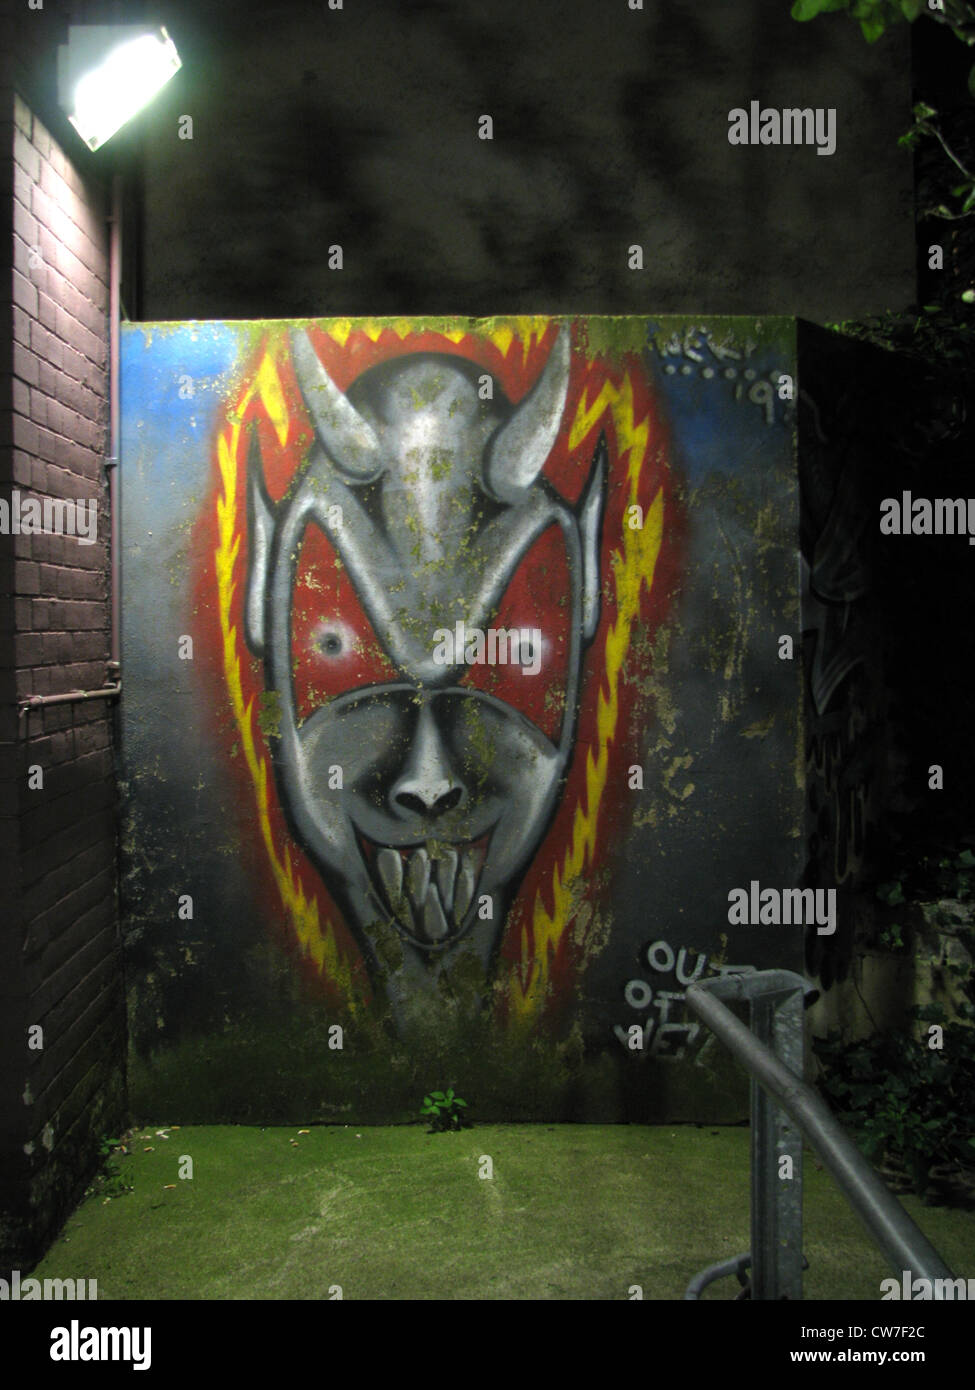 Gloomy grafiti in neon light portrays the devil in a dark backyard, Germany, Hamburg - Stock Image